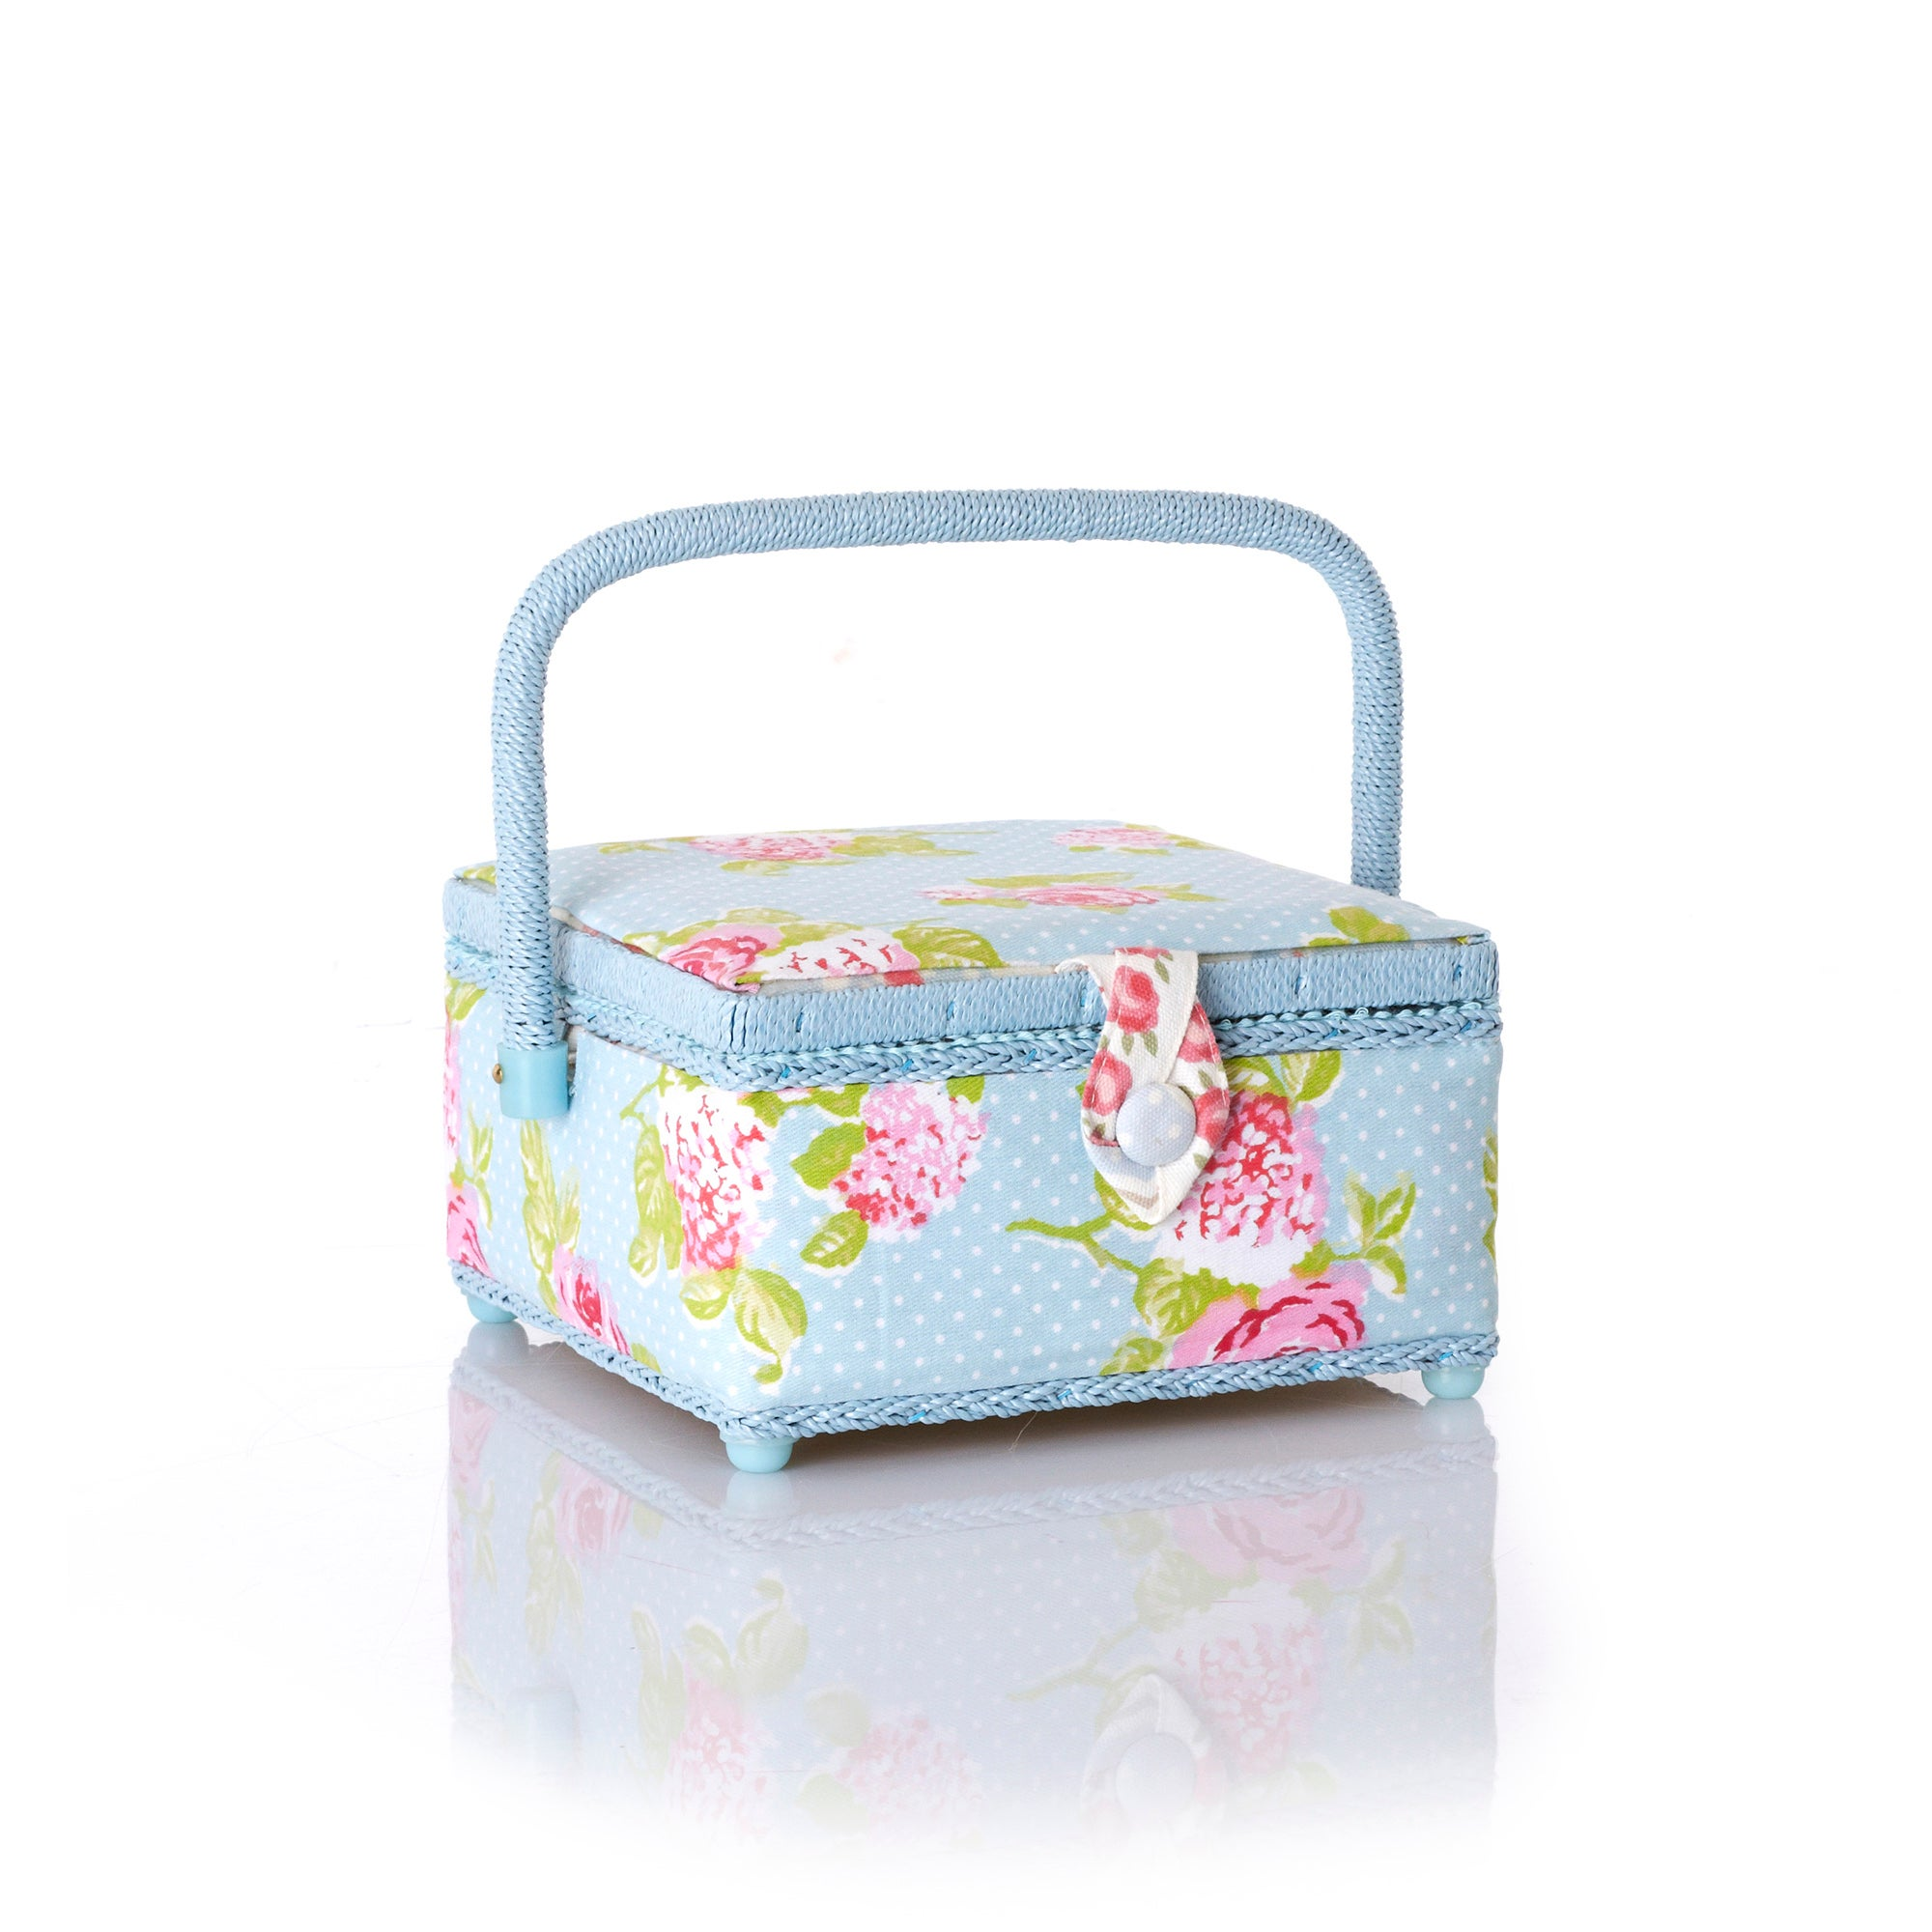 Rose and Ellis Clarendon Collection Sewing Basket